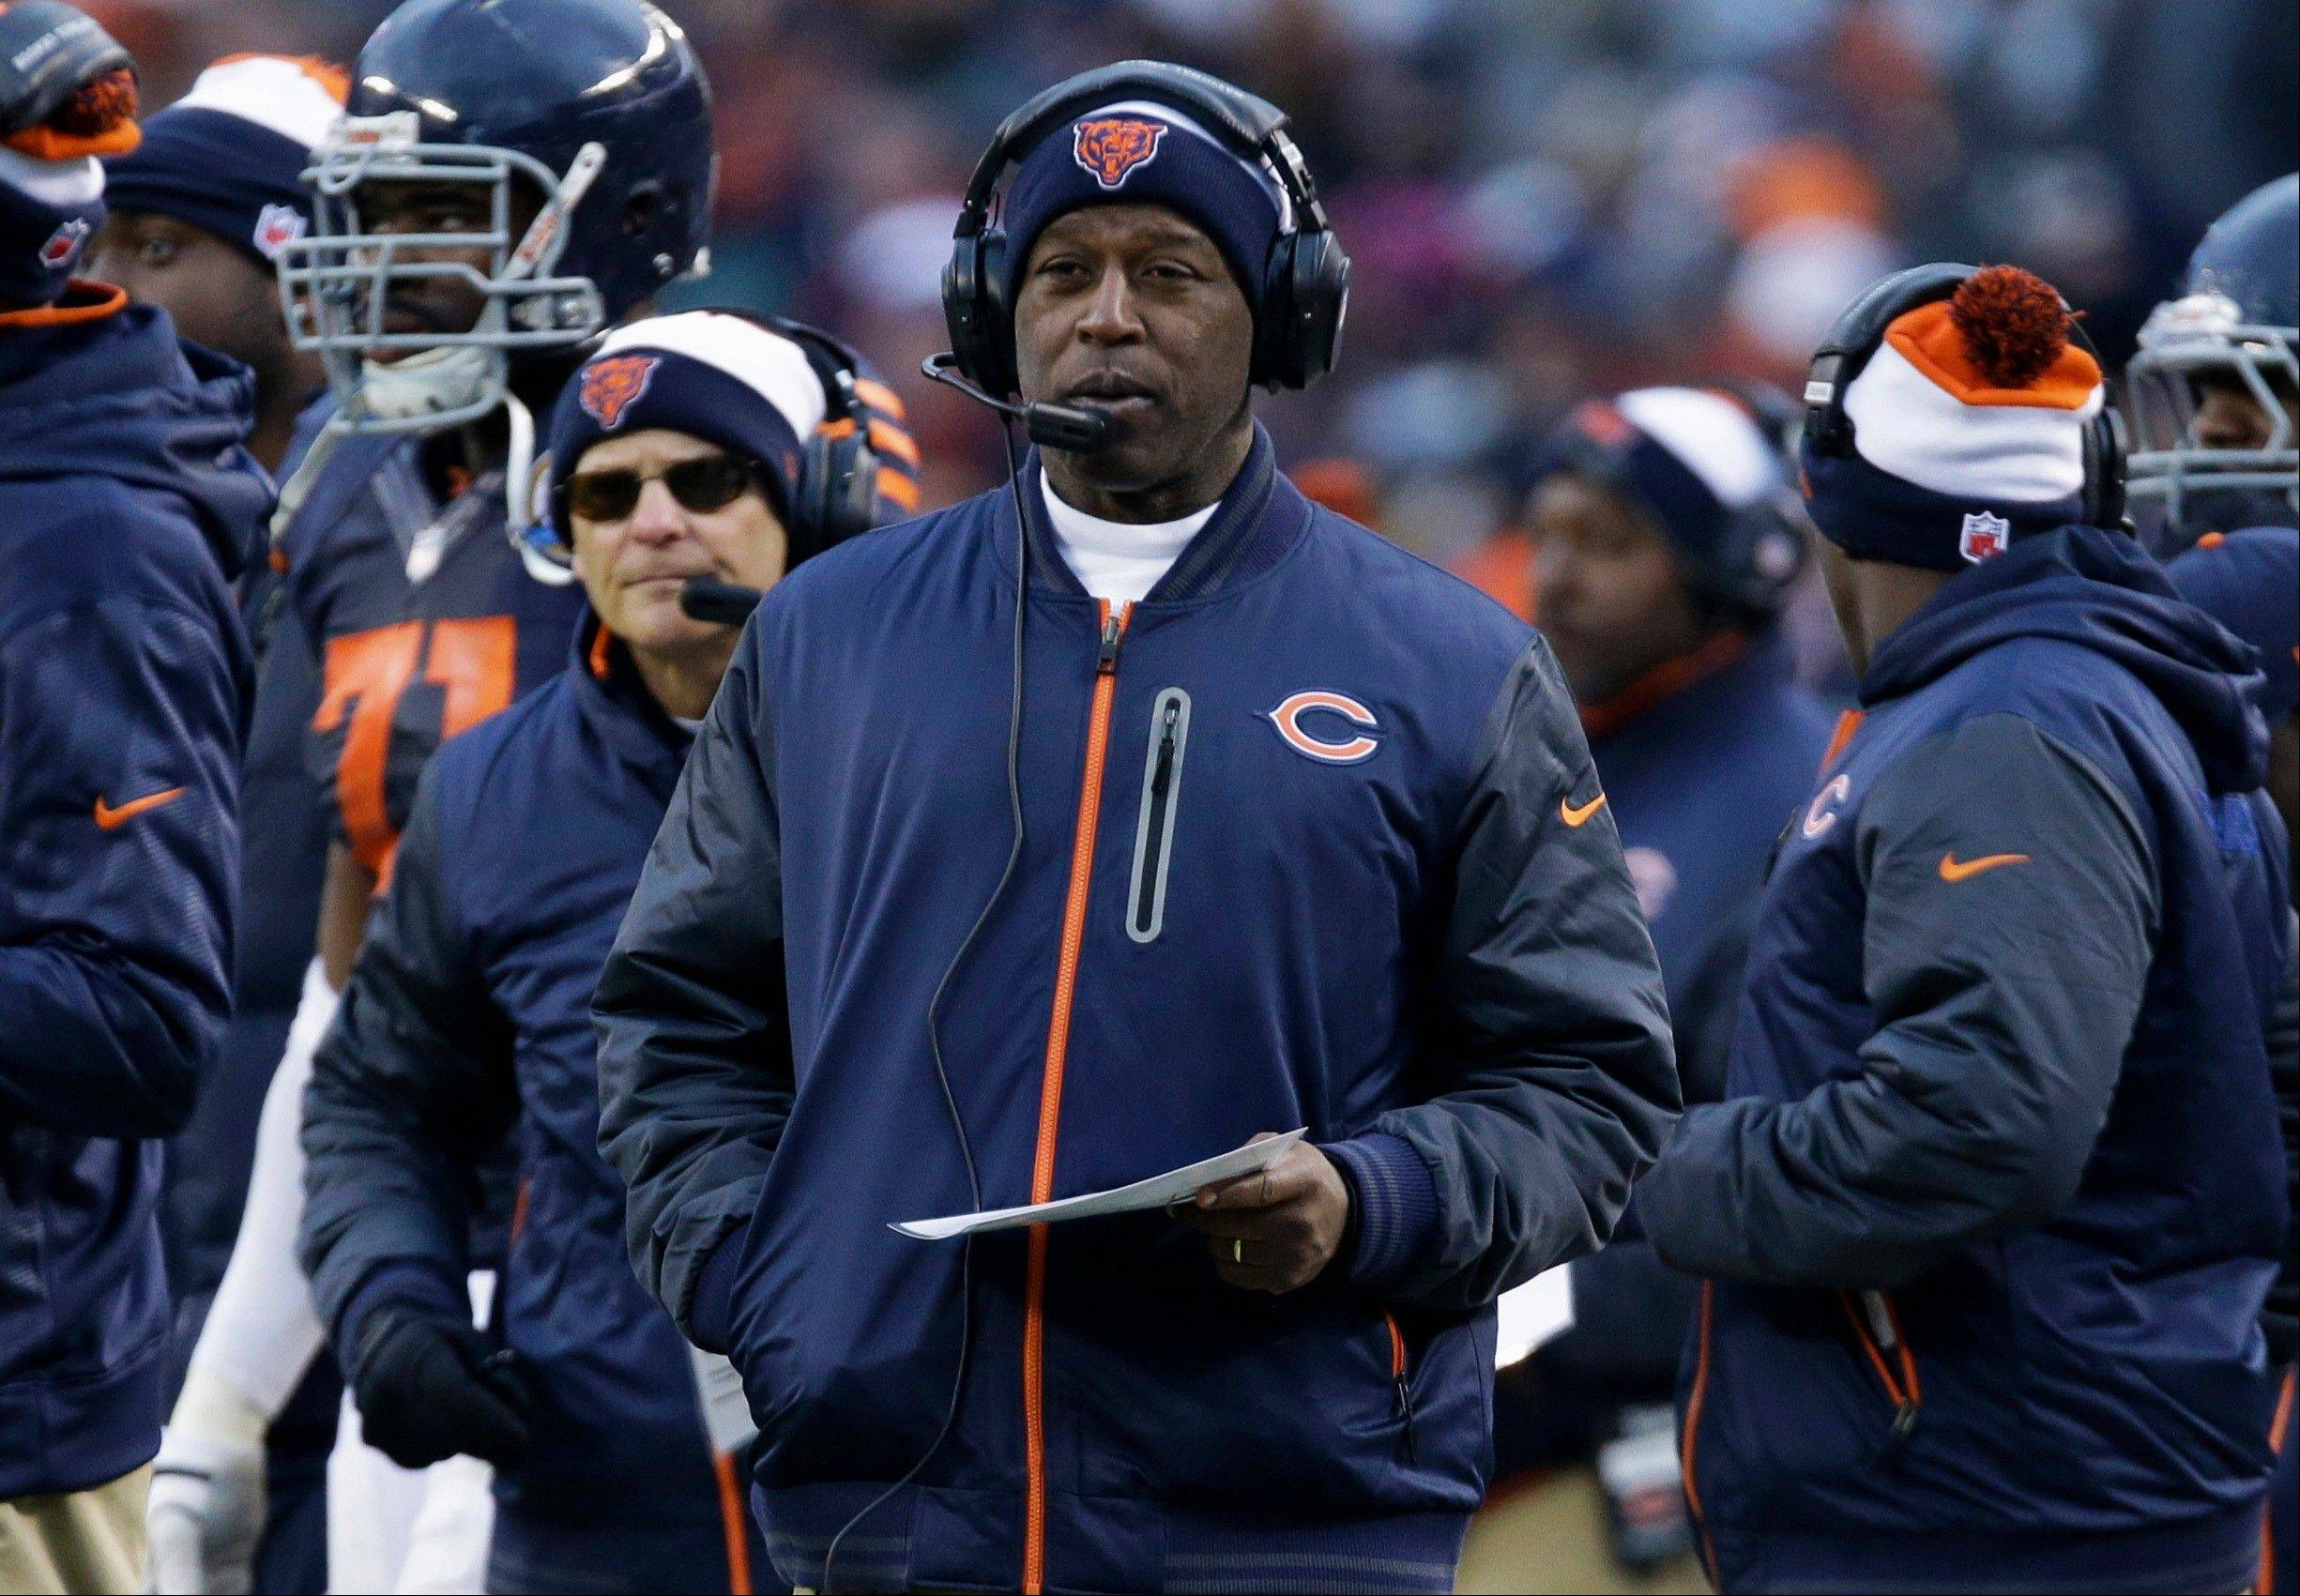 Coach Lovie Smith has watched the Bears slump to the precipice of elimination in the playoff hunt.